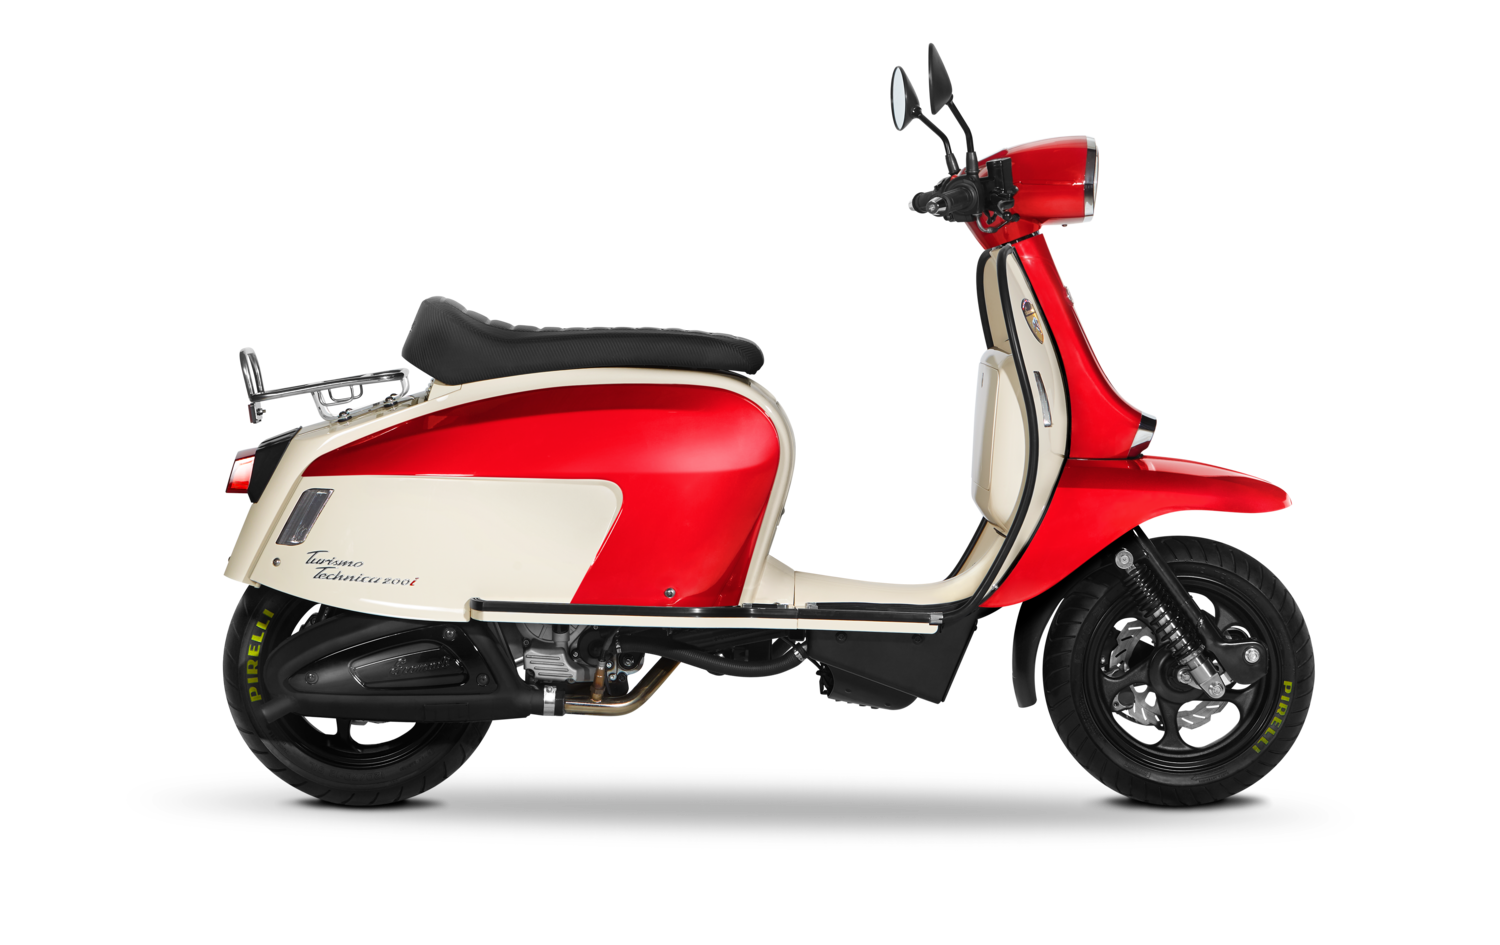 Scomadi TT200i Red/White